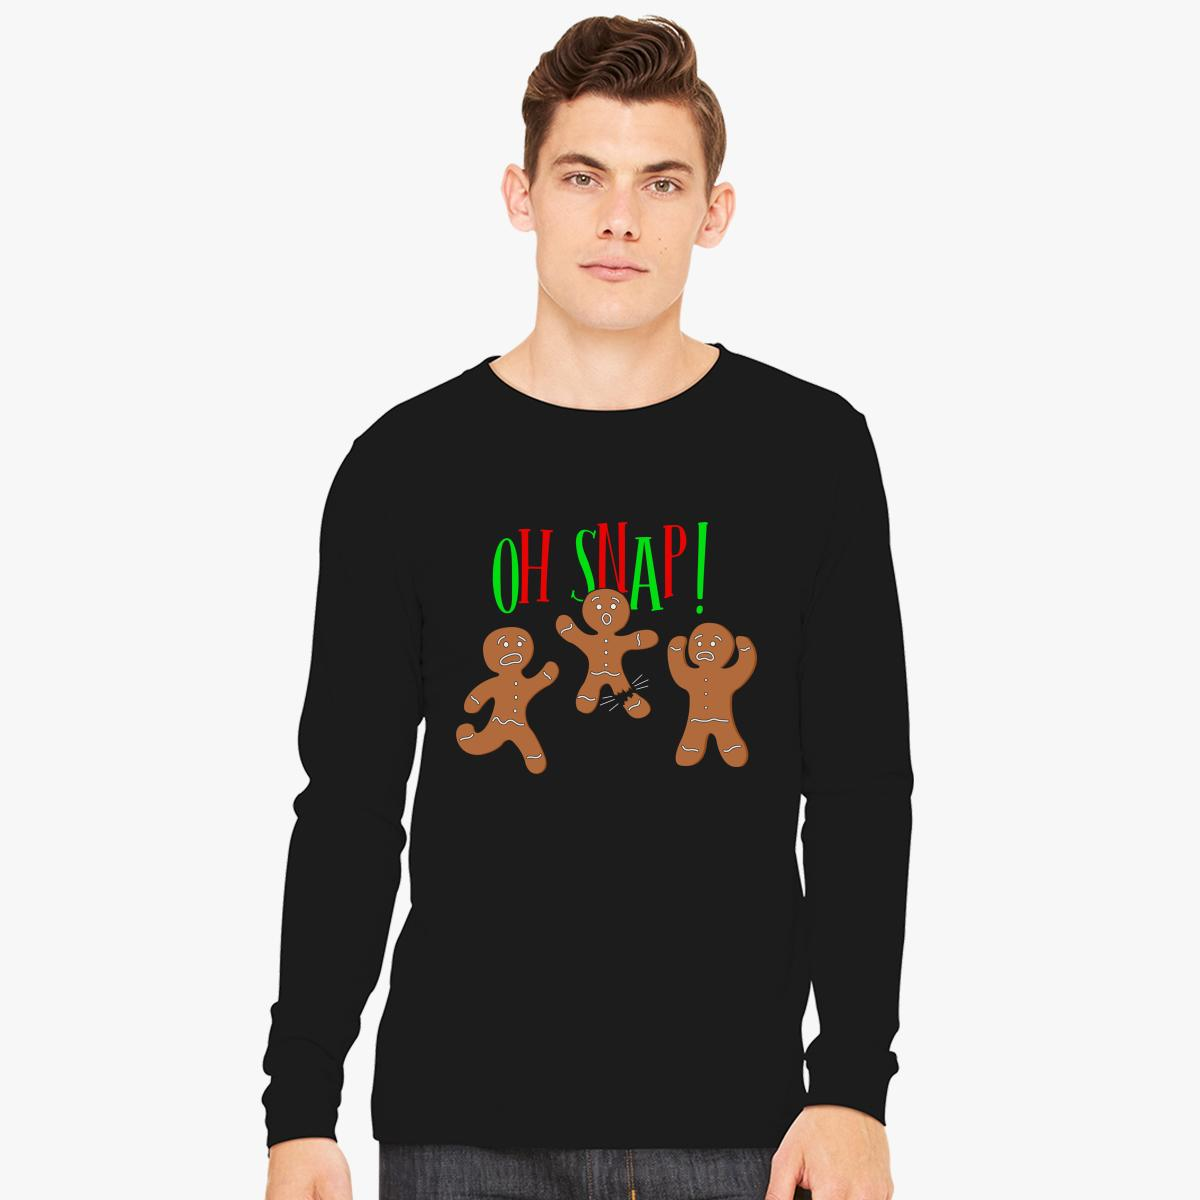 Oh Snap Funny Christmas Ginger Bread Man Cookie Long Sleeve T-shirt ...